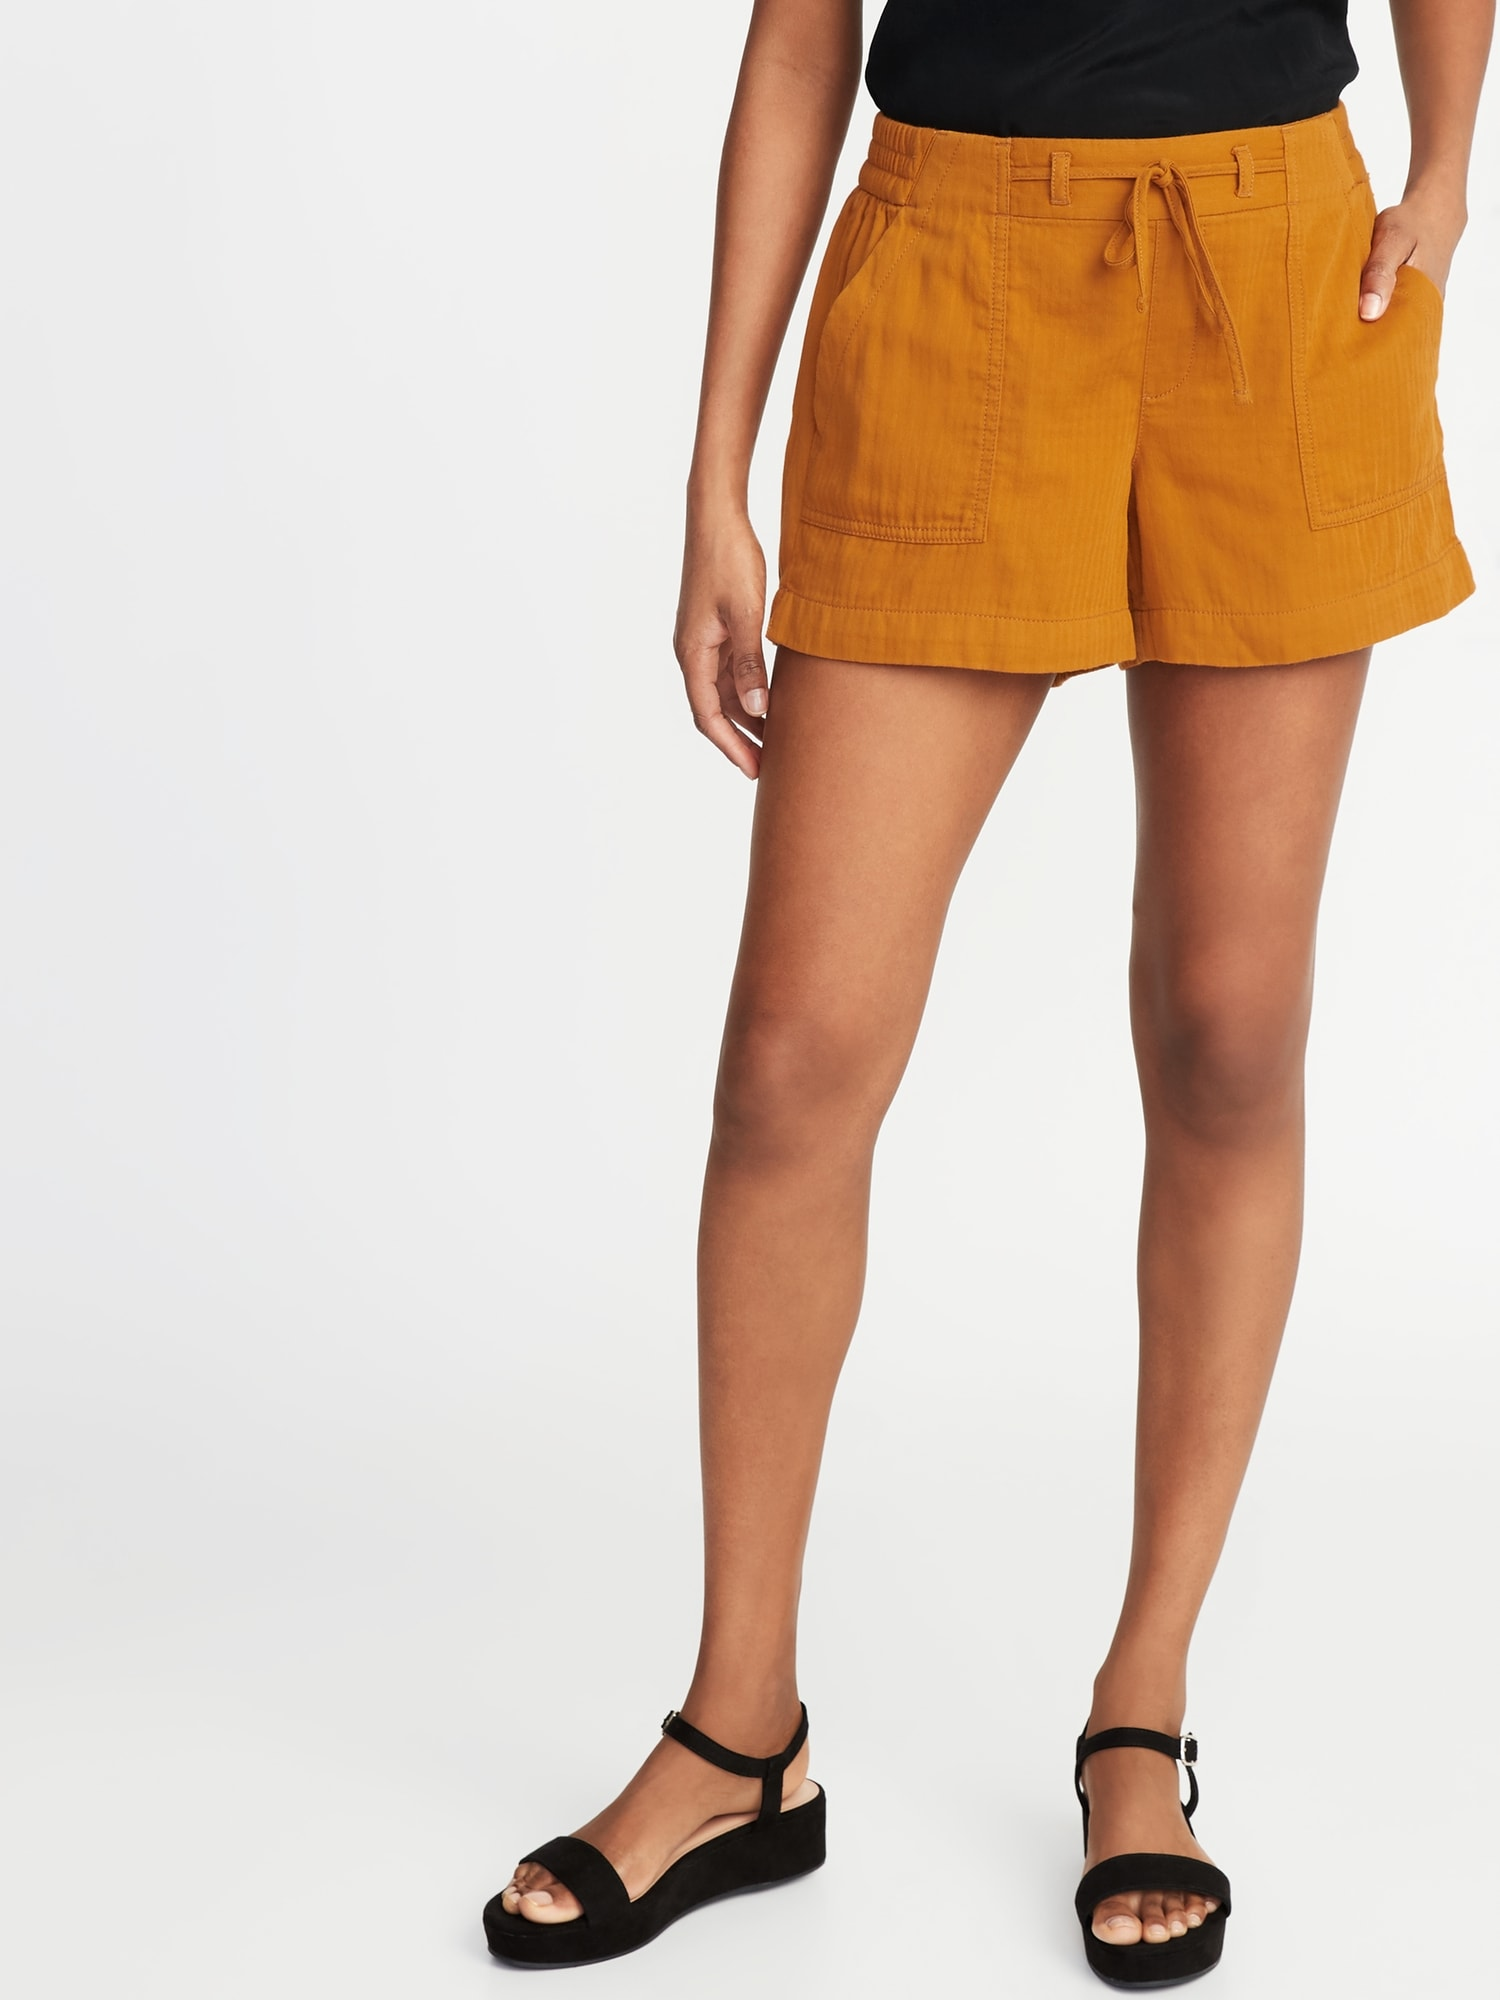 0a082aa889e65 Mid-Rise Soft Twill Pull-On Shorts for Women - 4-inch inseam | Old Navy